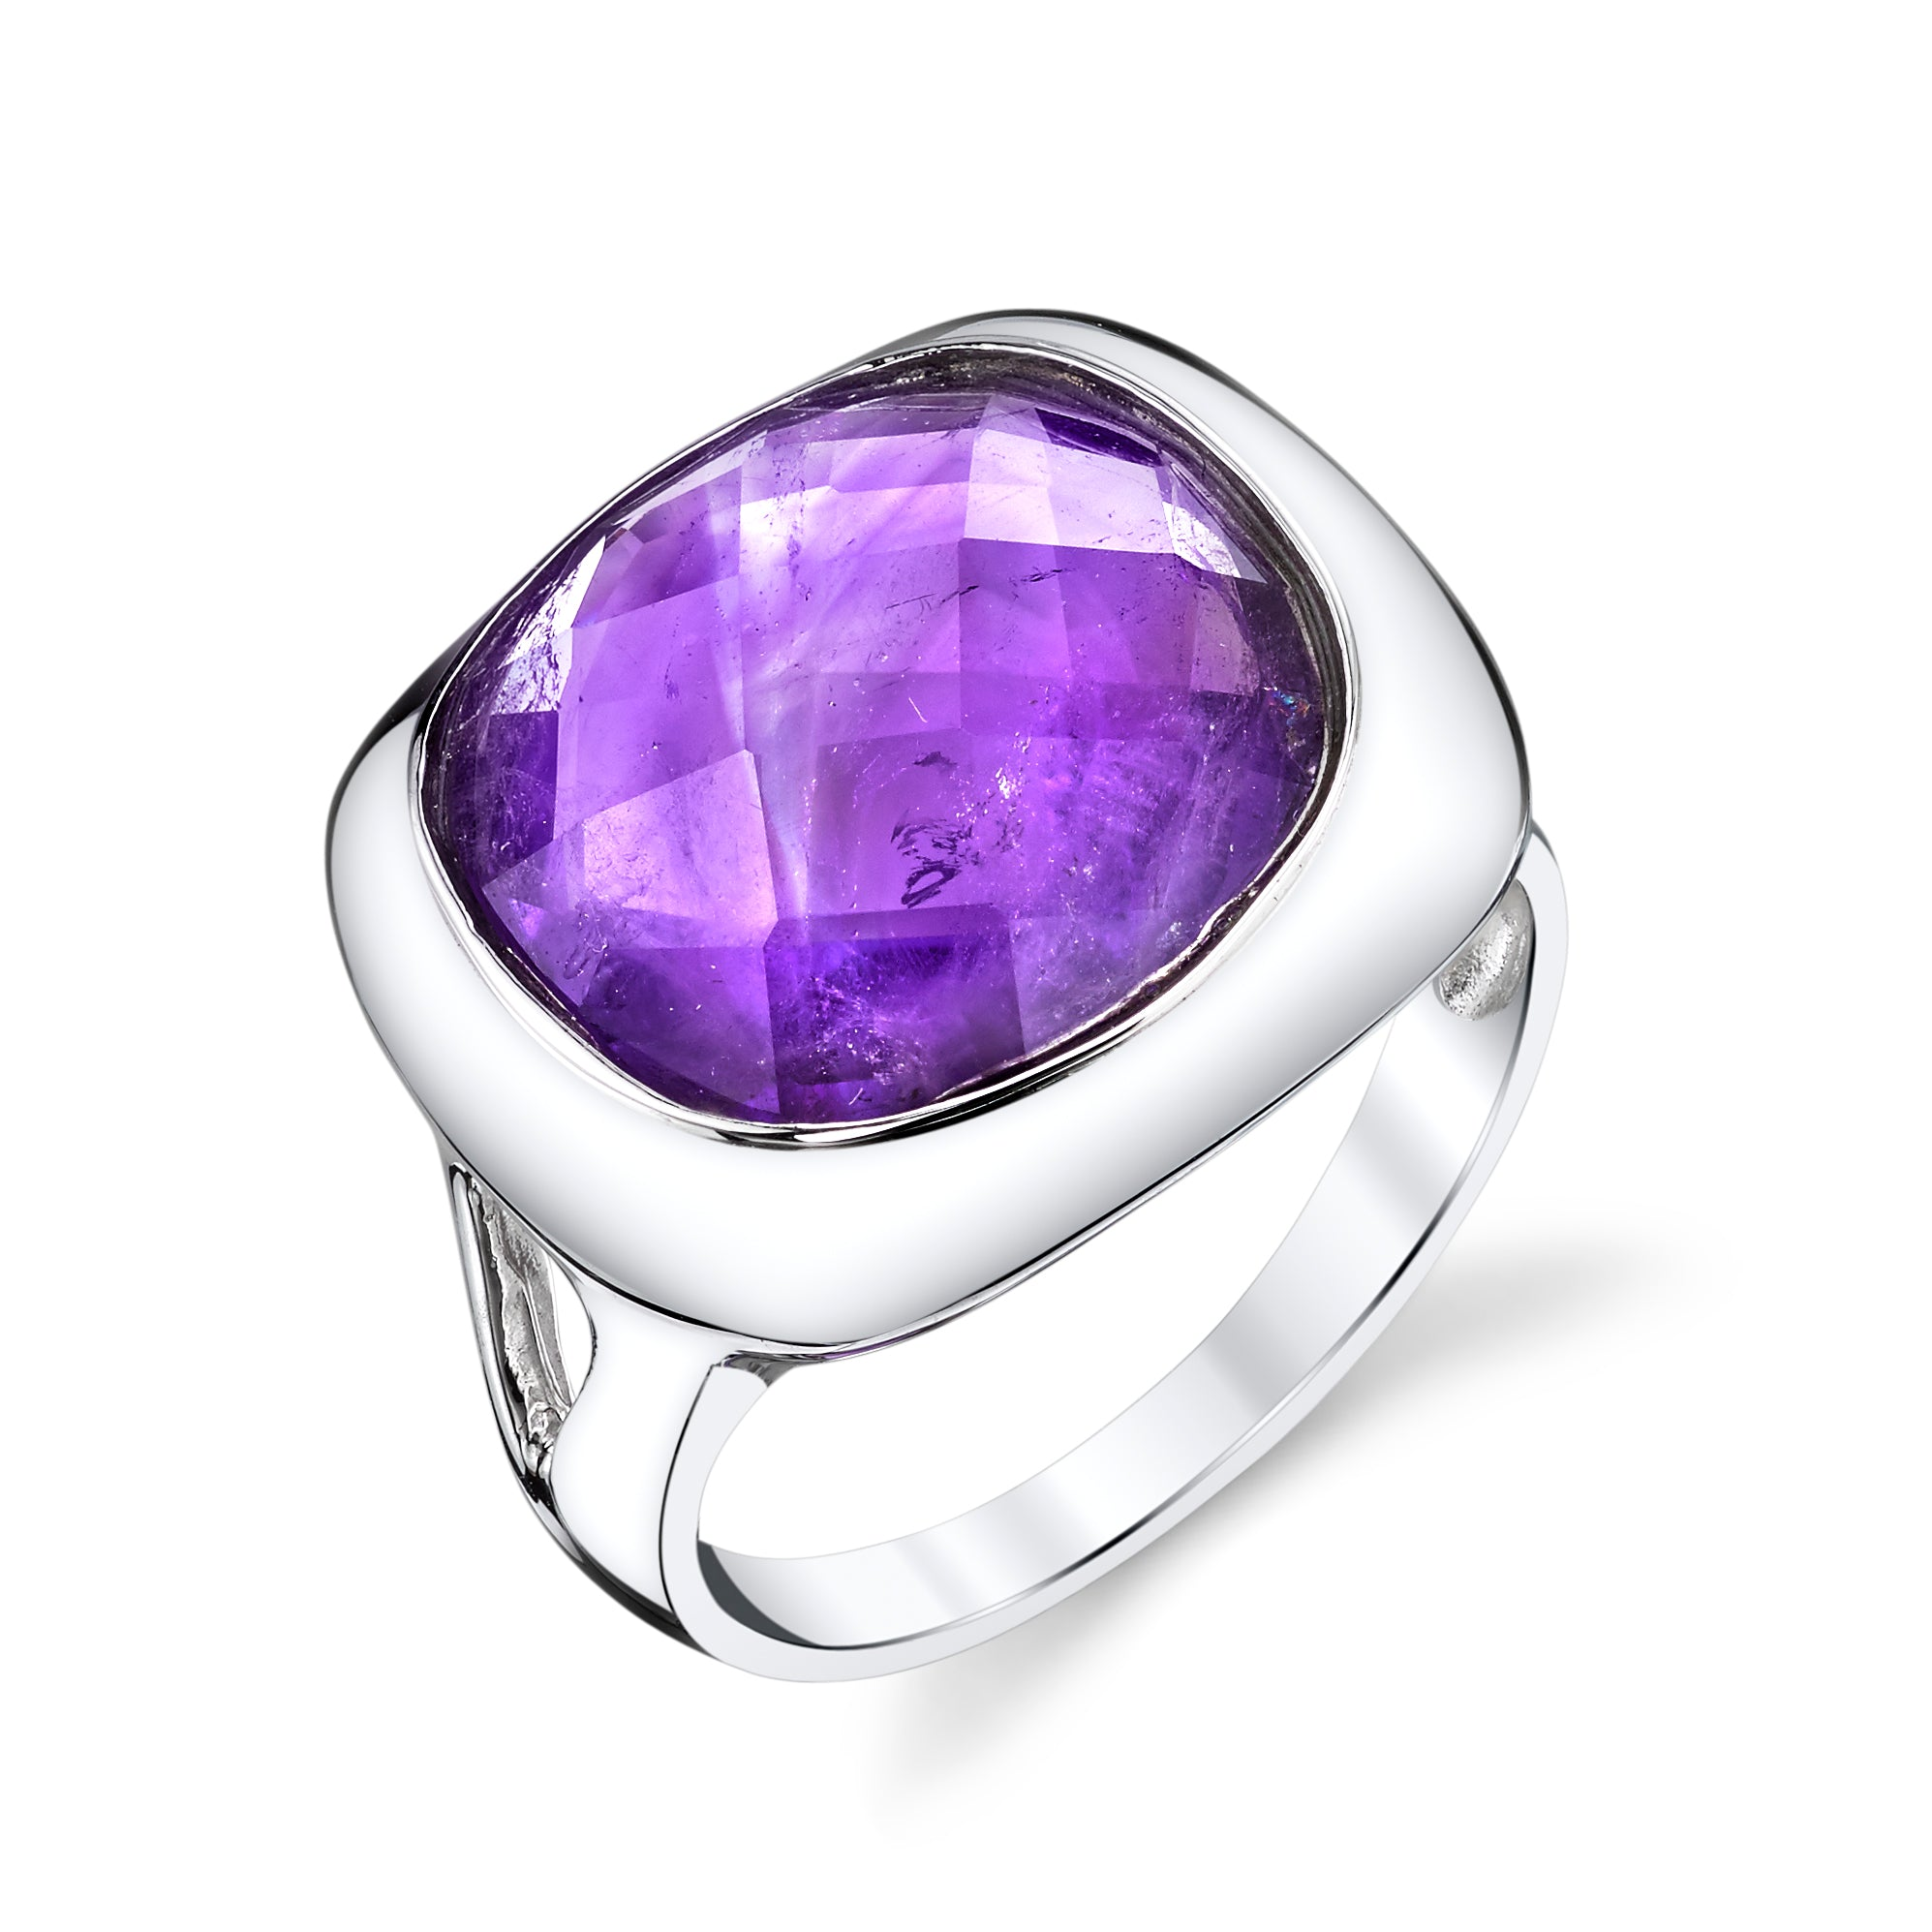 Checkerboard Cushion Cut Amethyst Ring